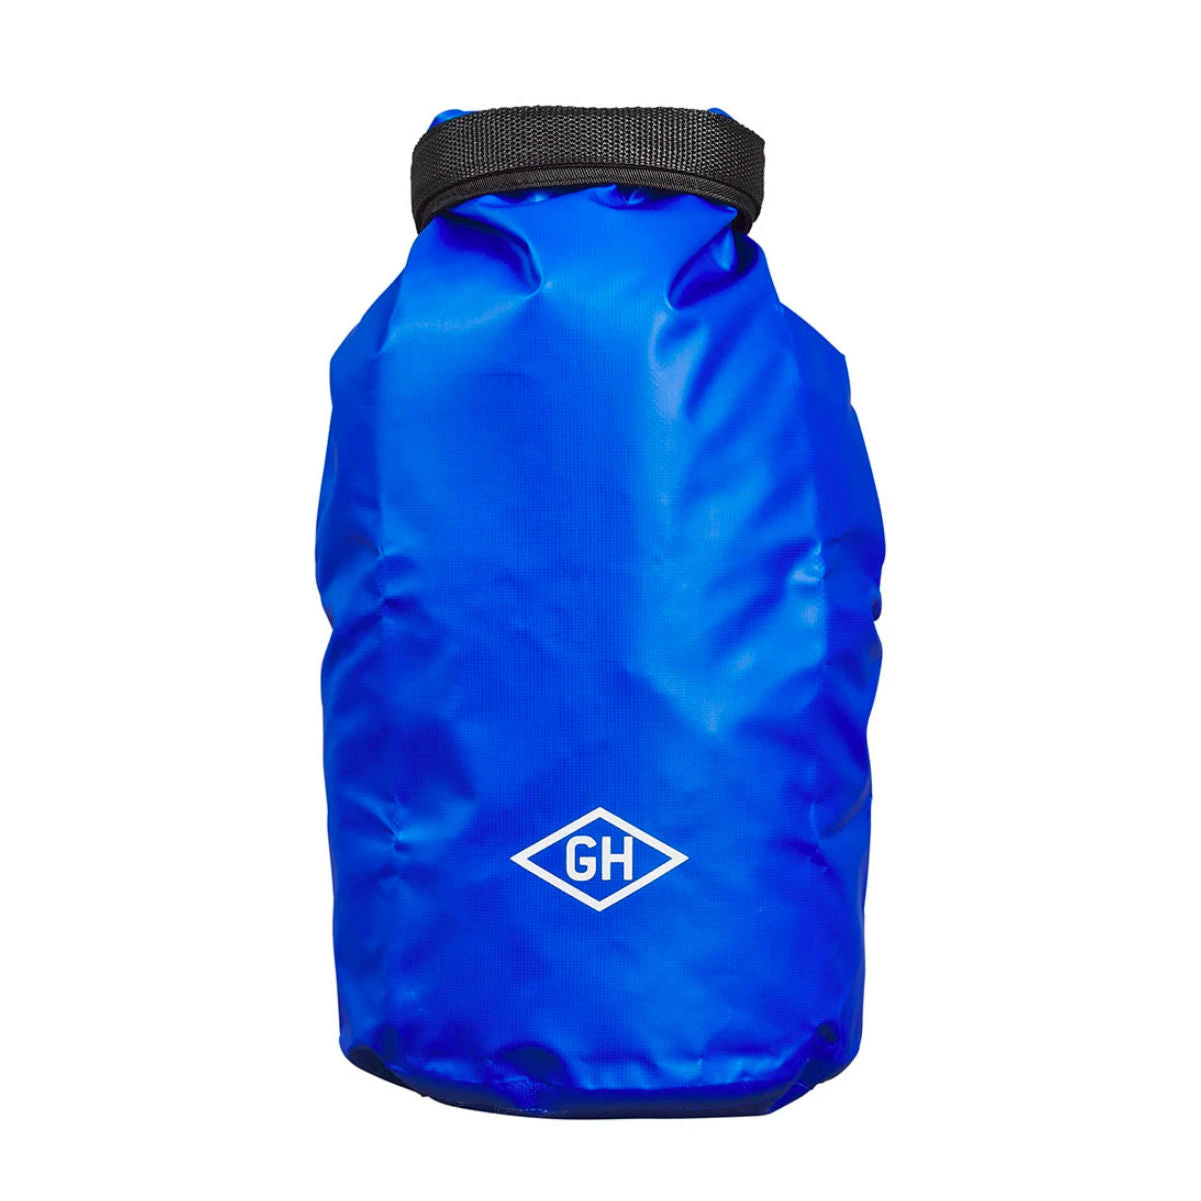 Gentelmen's Hardware Waterproof Dry Bag, blue